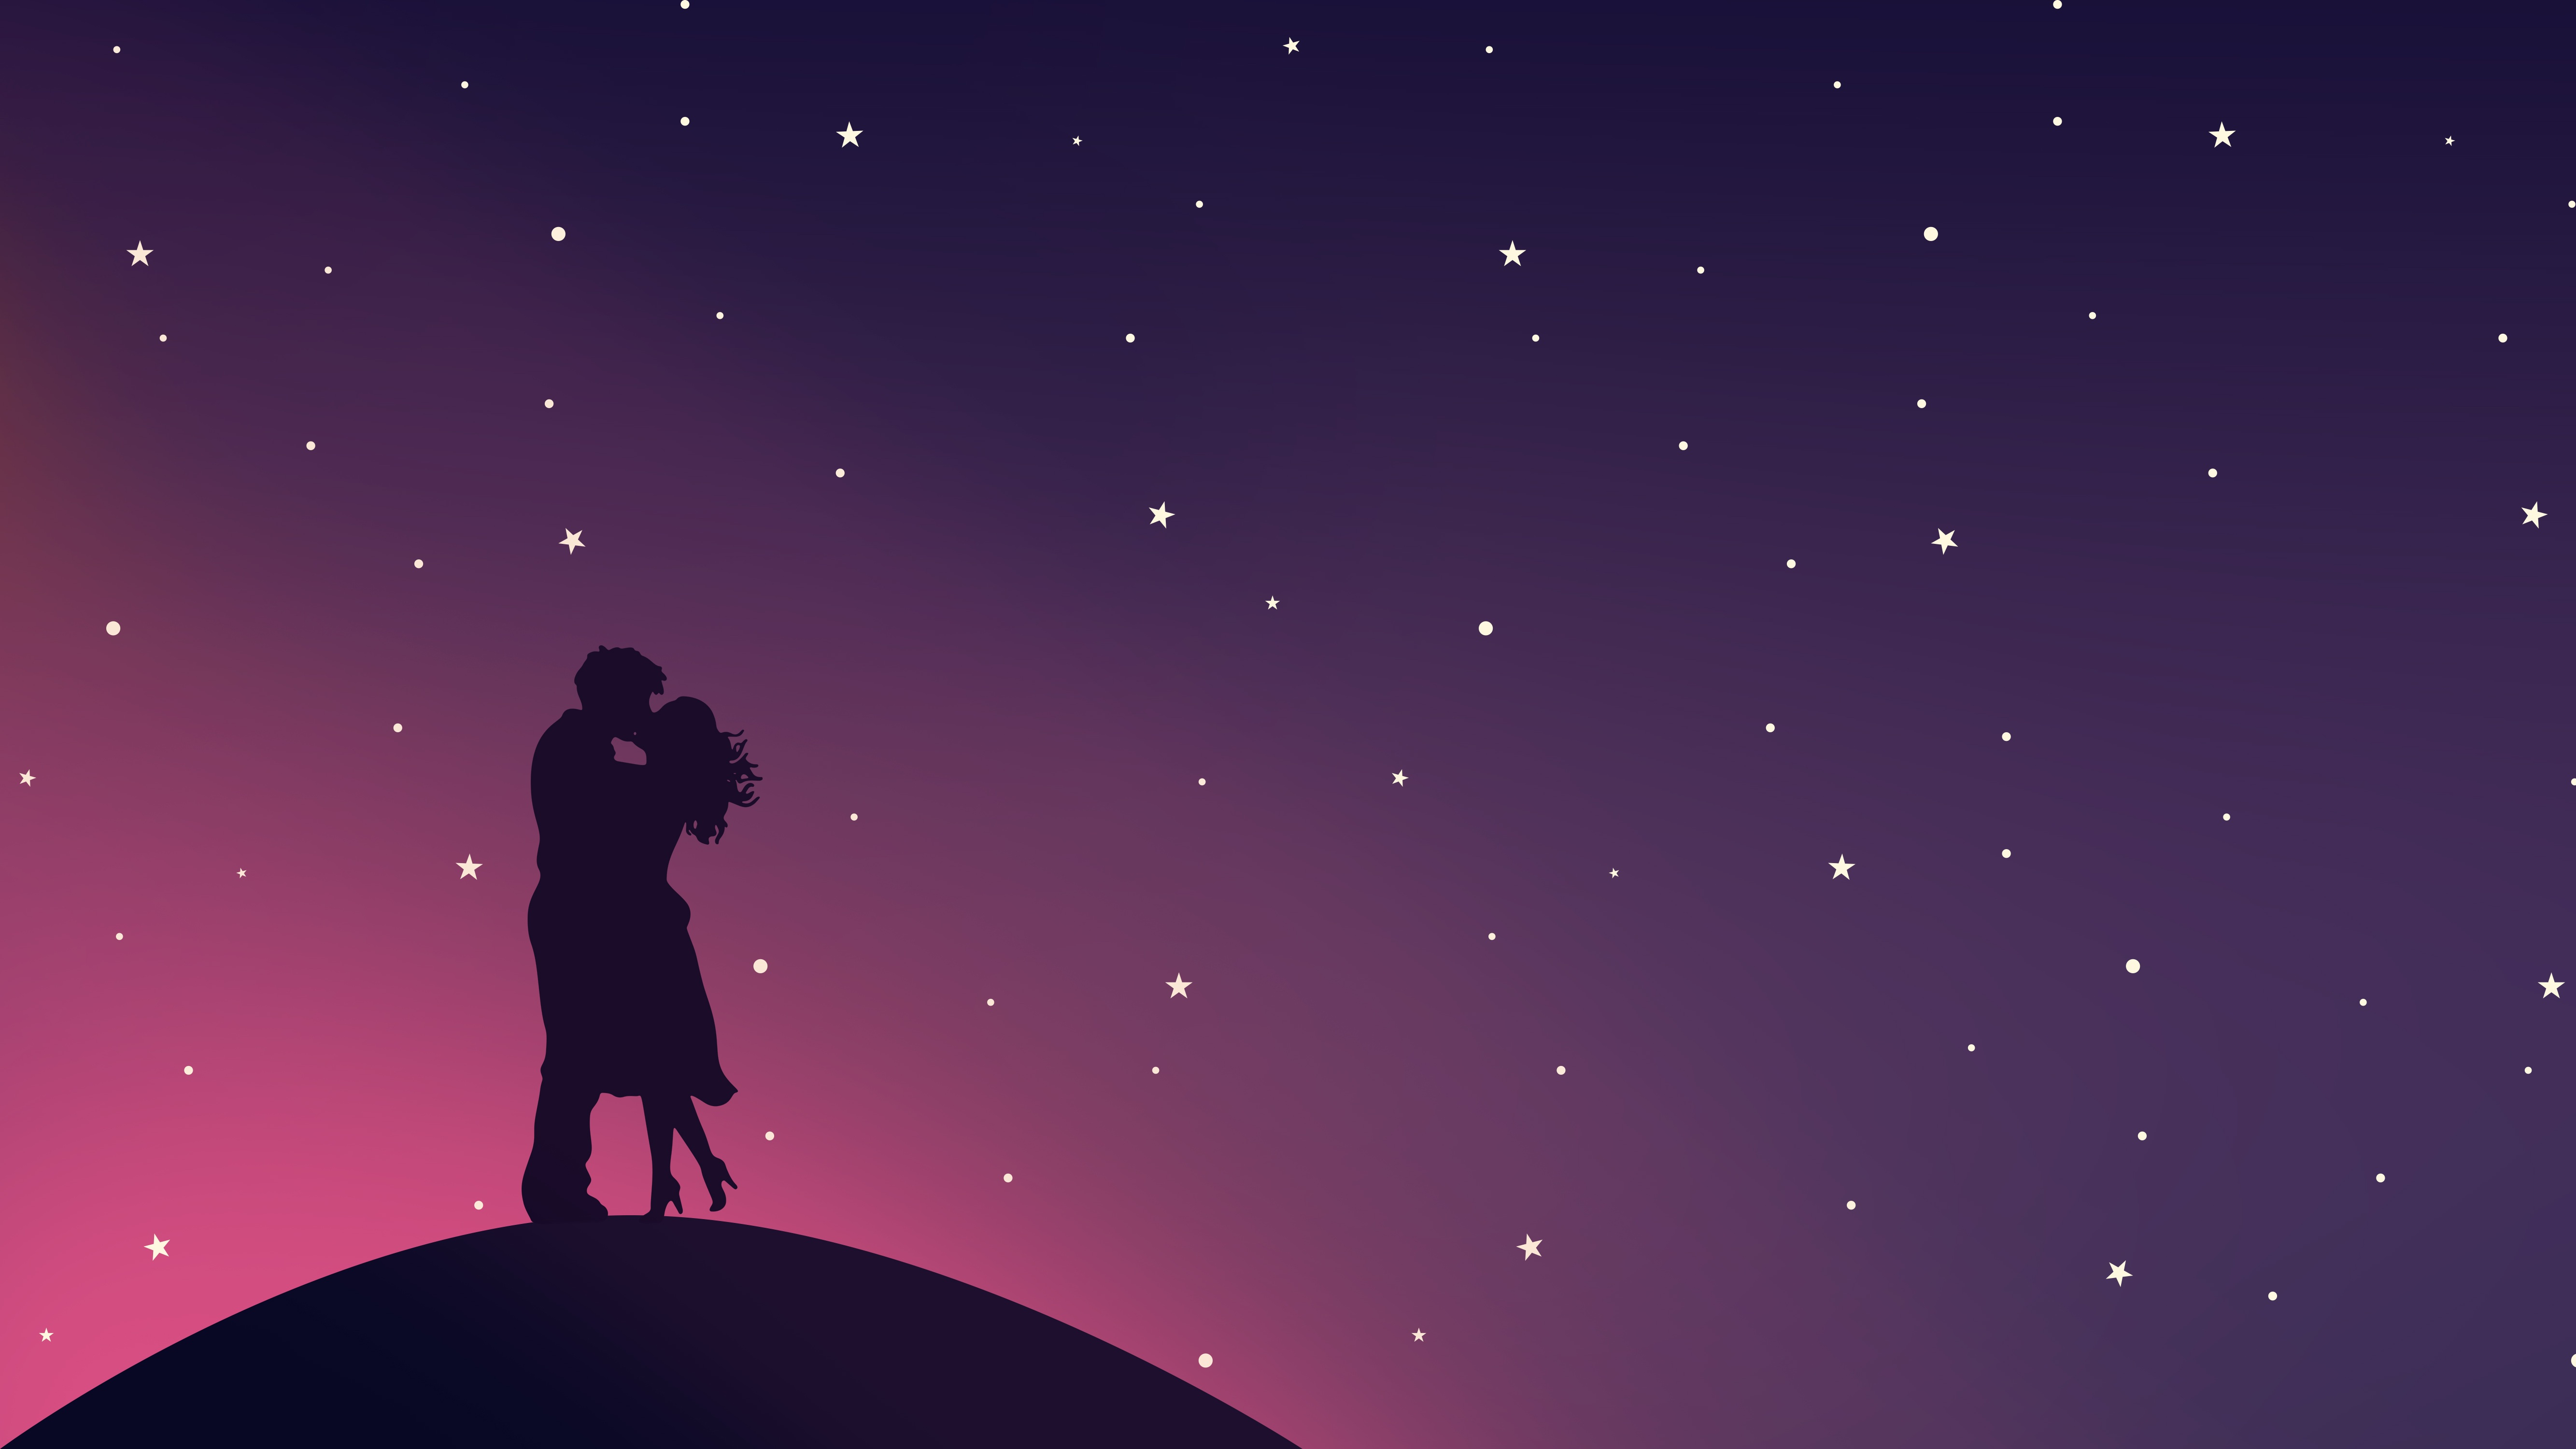 4k Couple Kiss Love Wallpapers High Quality Download Free